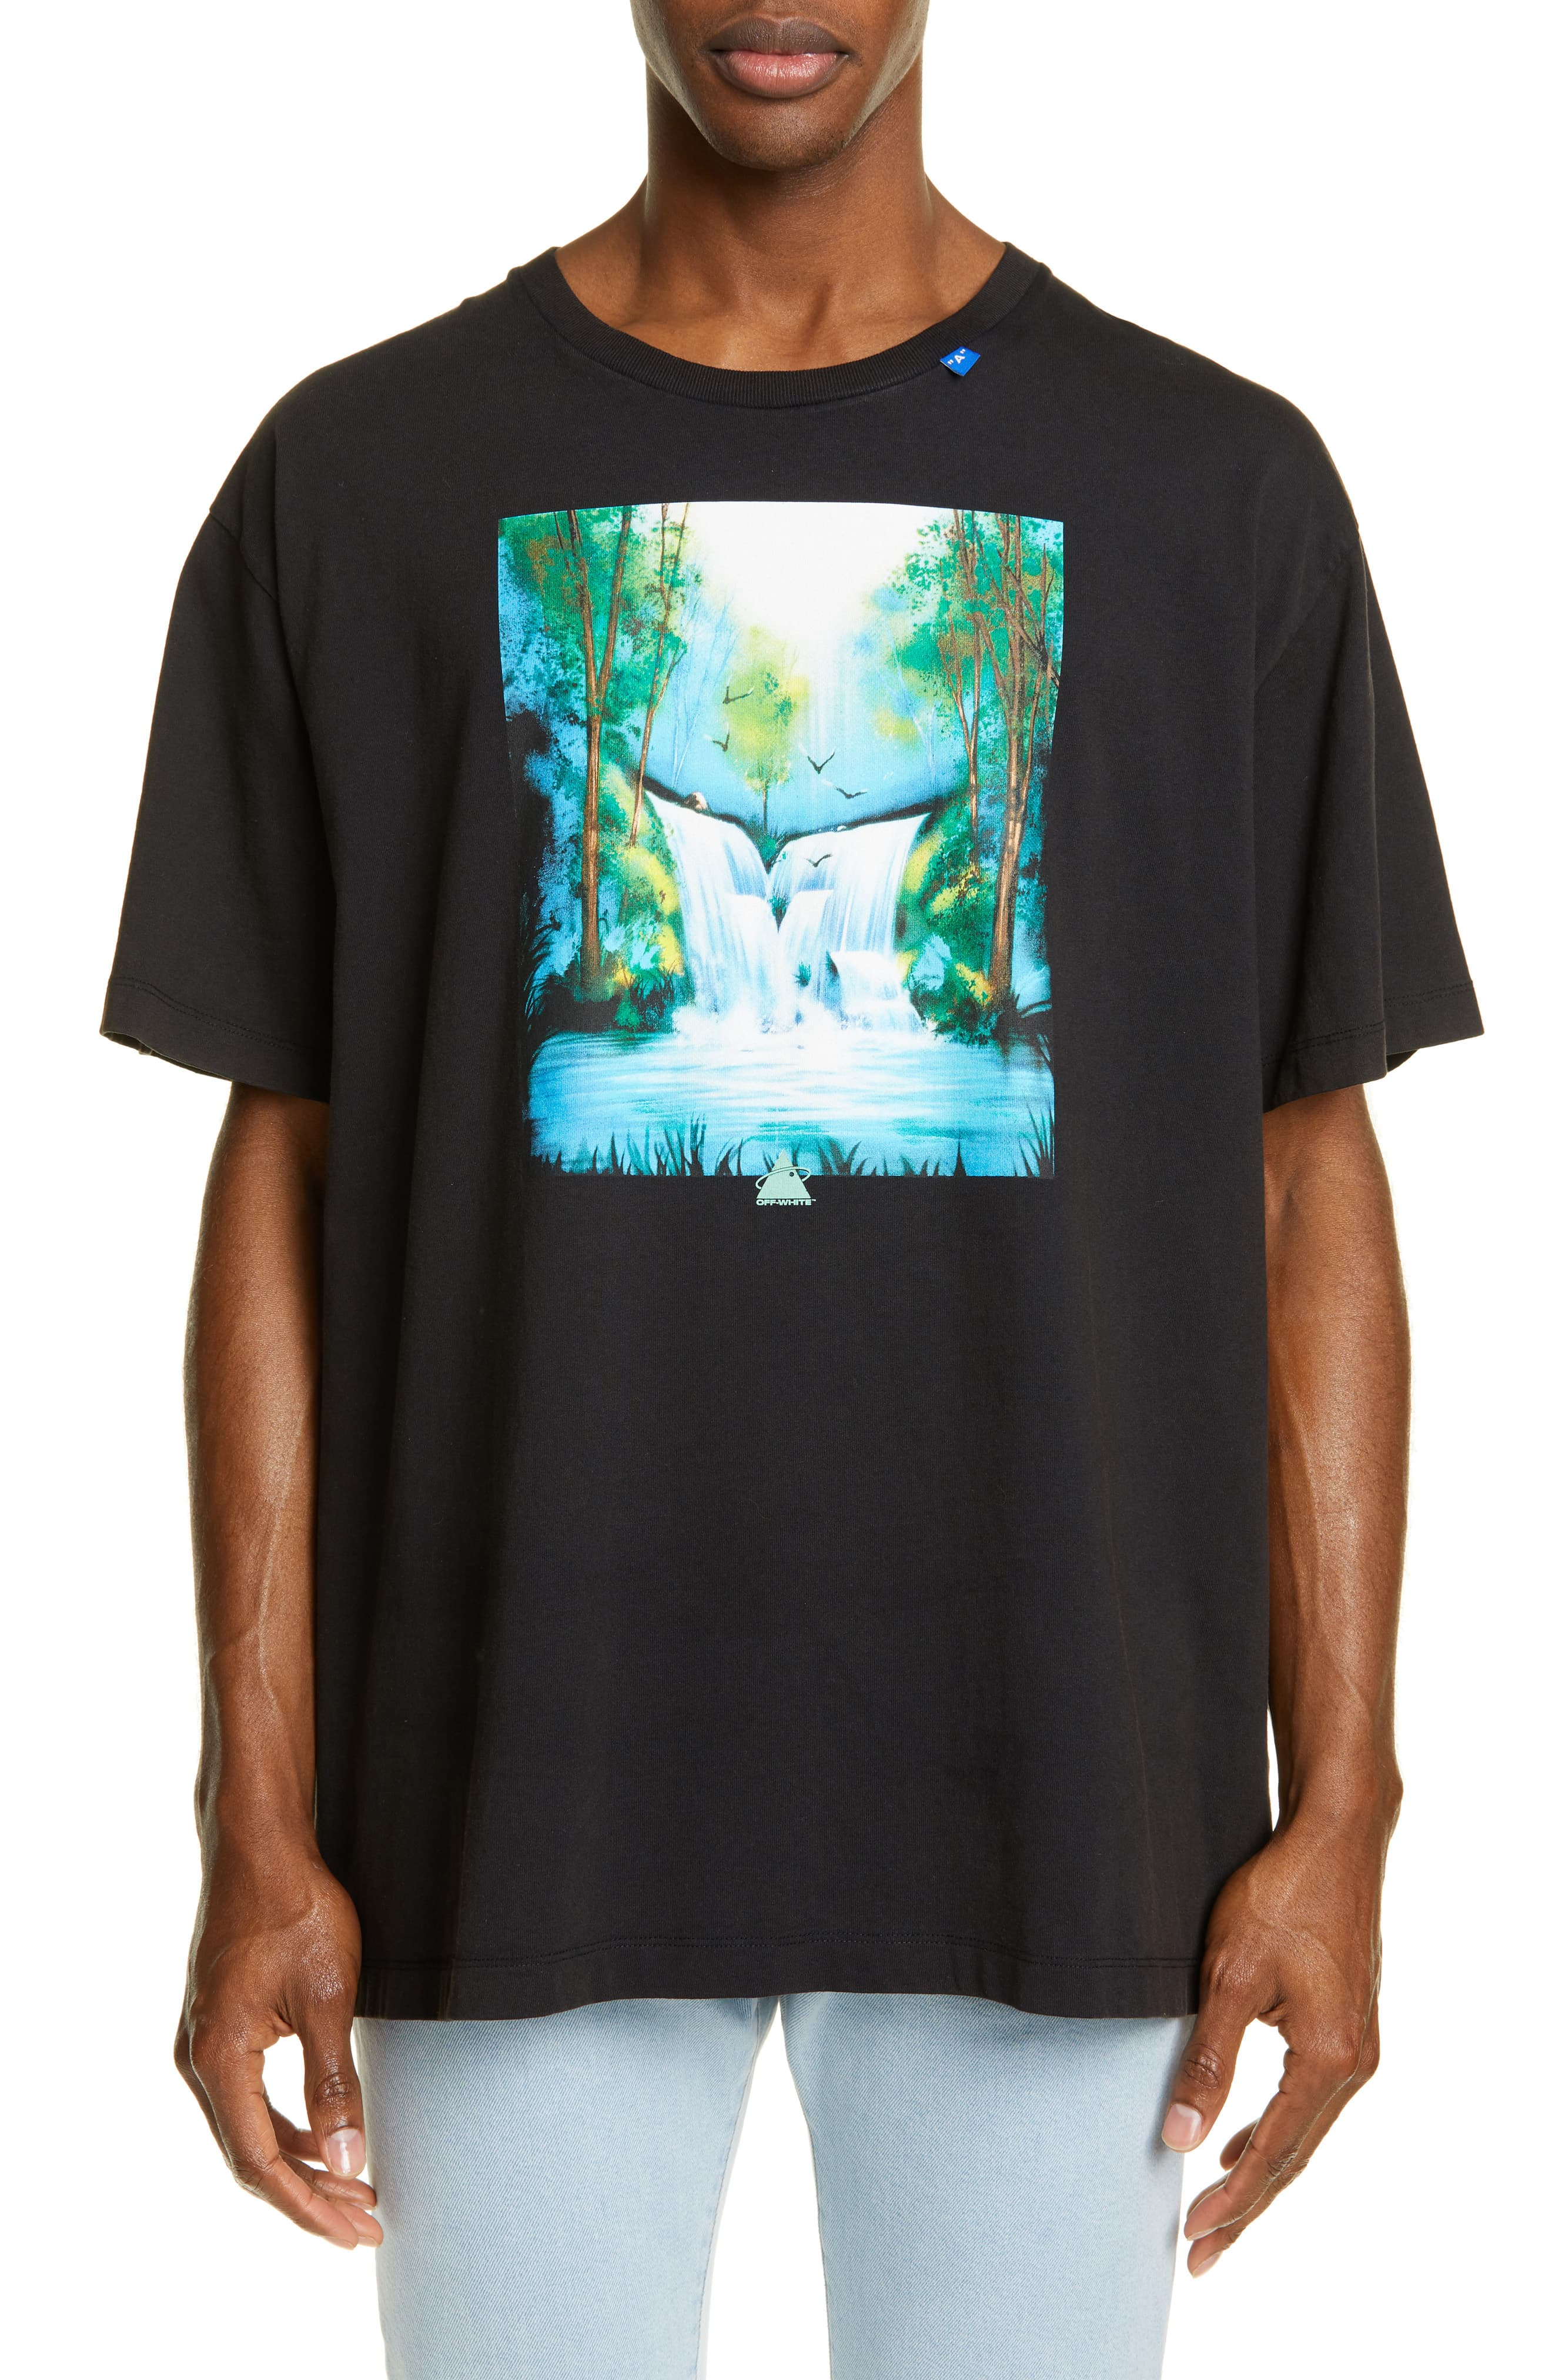 570fc20e Men's Off-White Waterfall Graphic Oversize T-Shirt | The Fashionisto